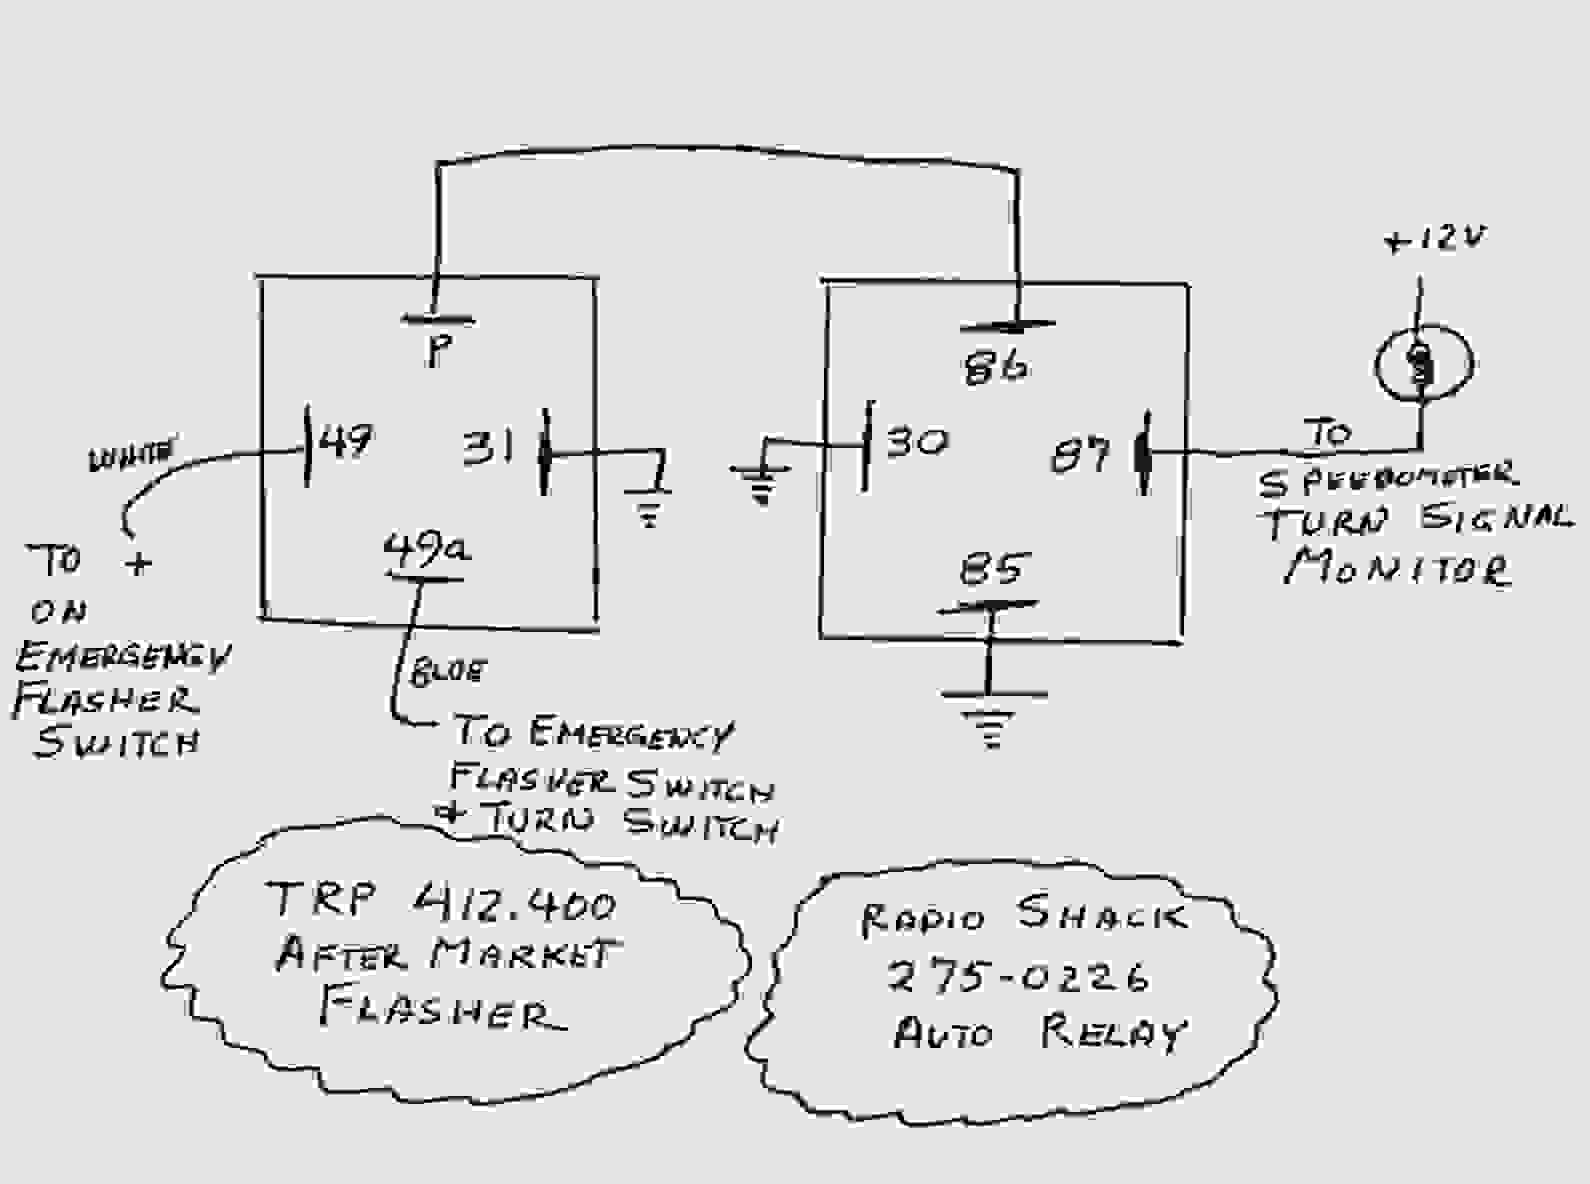 Pxcm034 Wiring Diagram